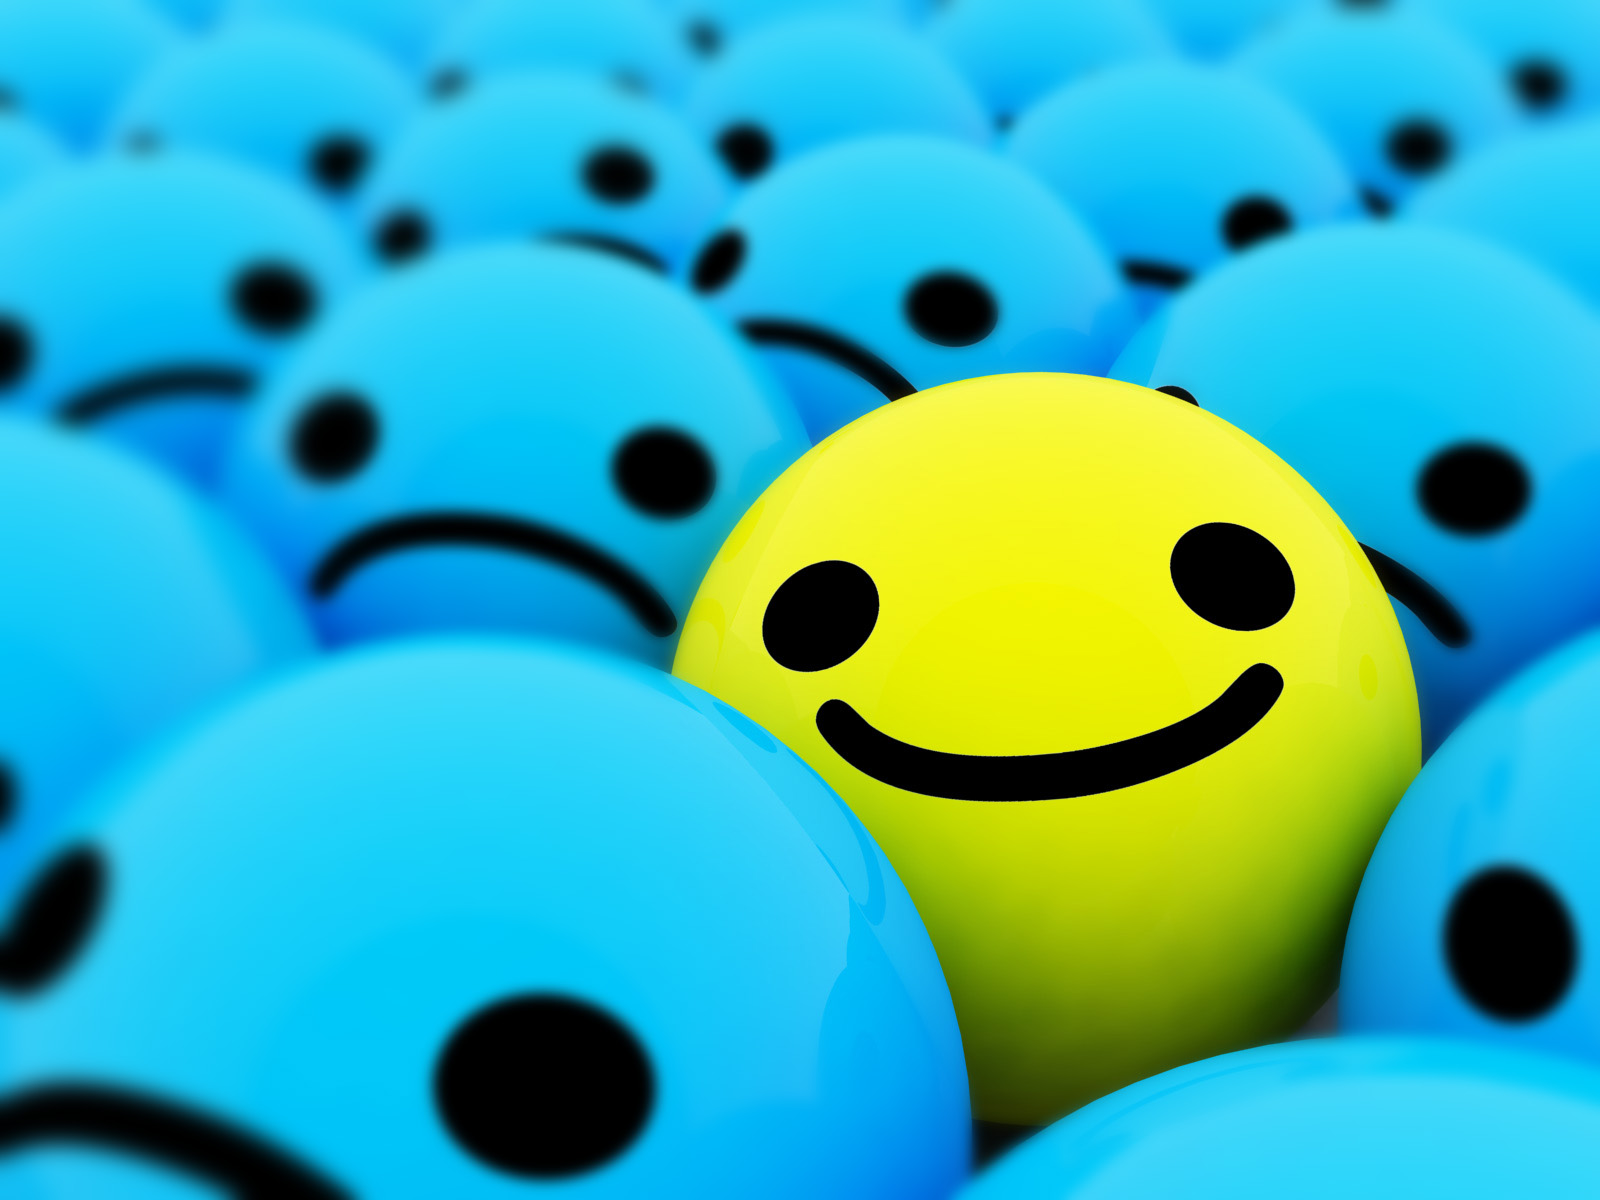 Smiley HD Wallpapers Download HD Wallpapers From HD Wallpapers MG 1600x1200